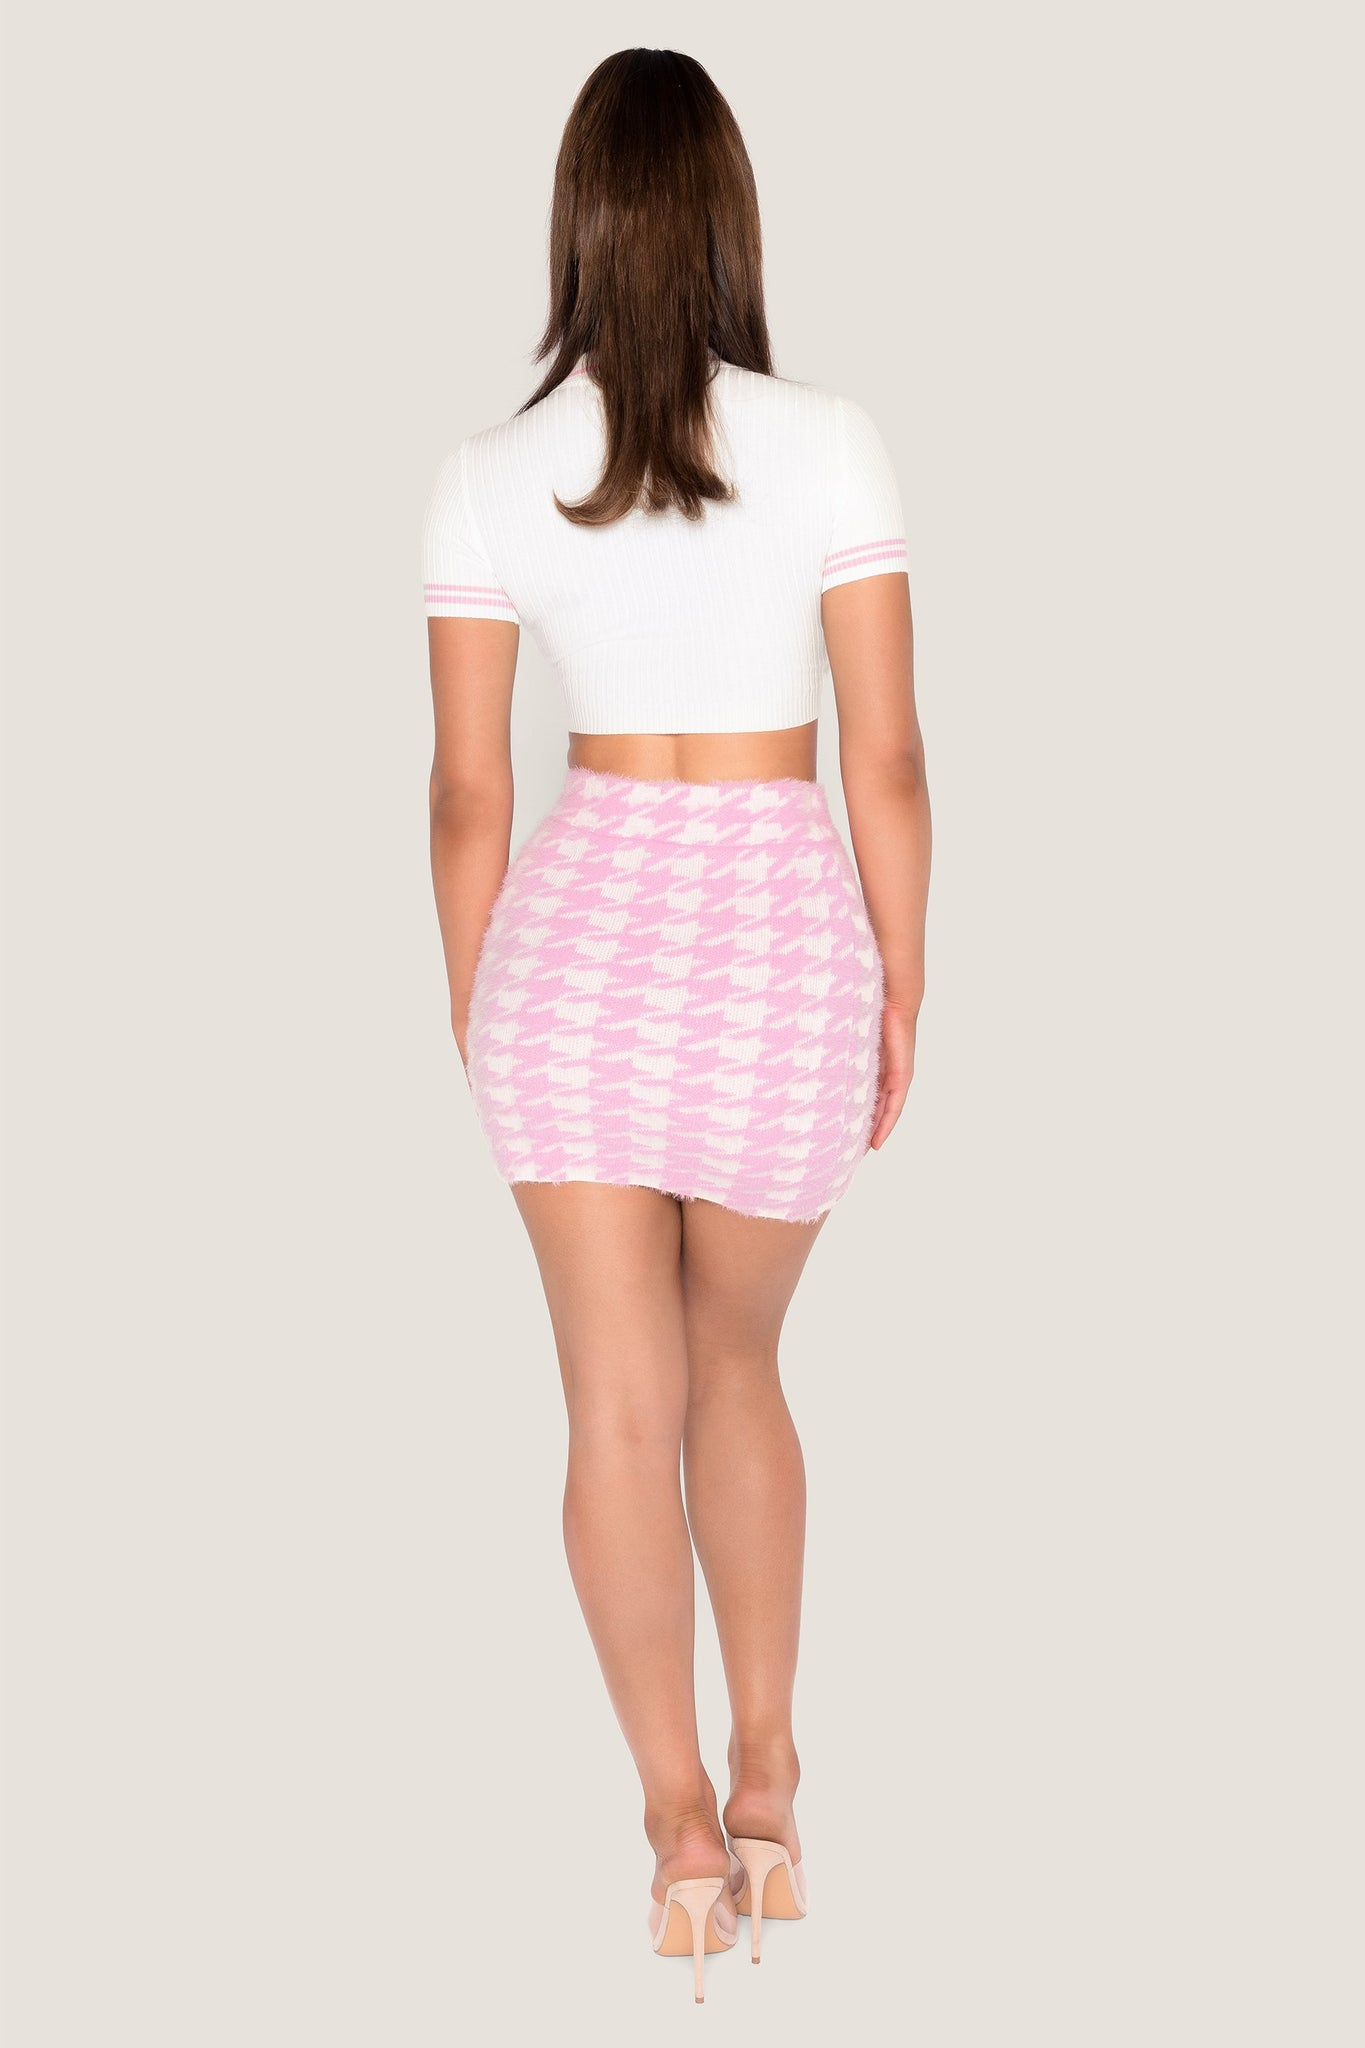 Cindie Fluffy Houndstooth Mini Skirt - Baby Pink - MESHKI